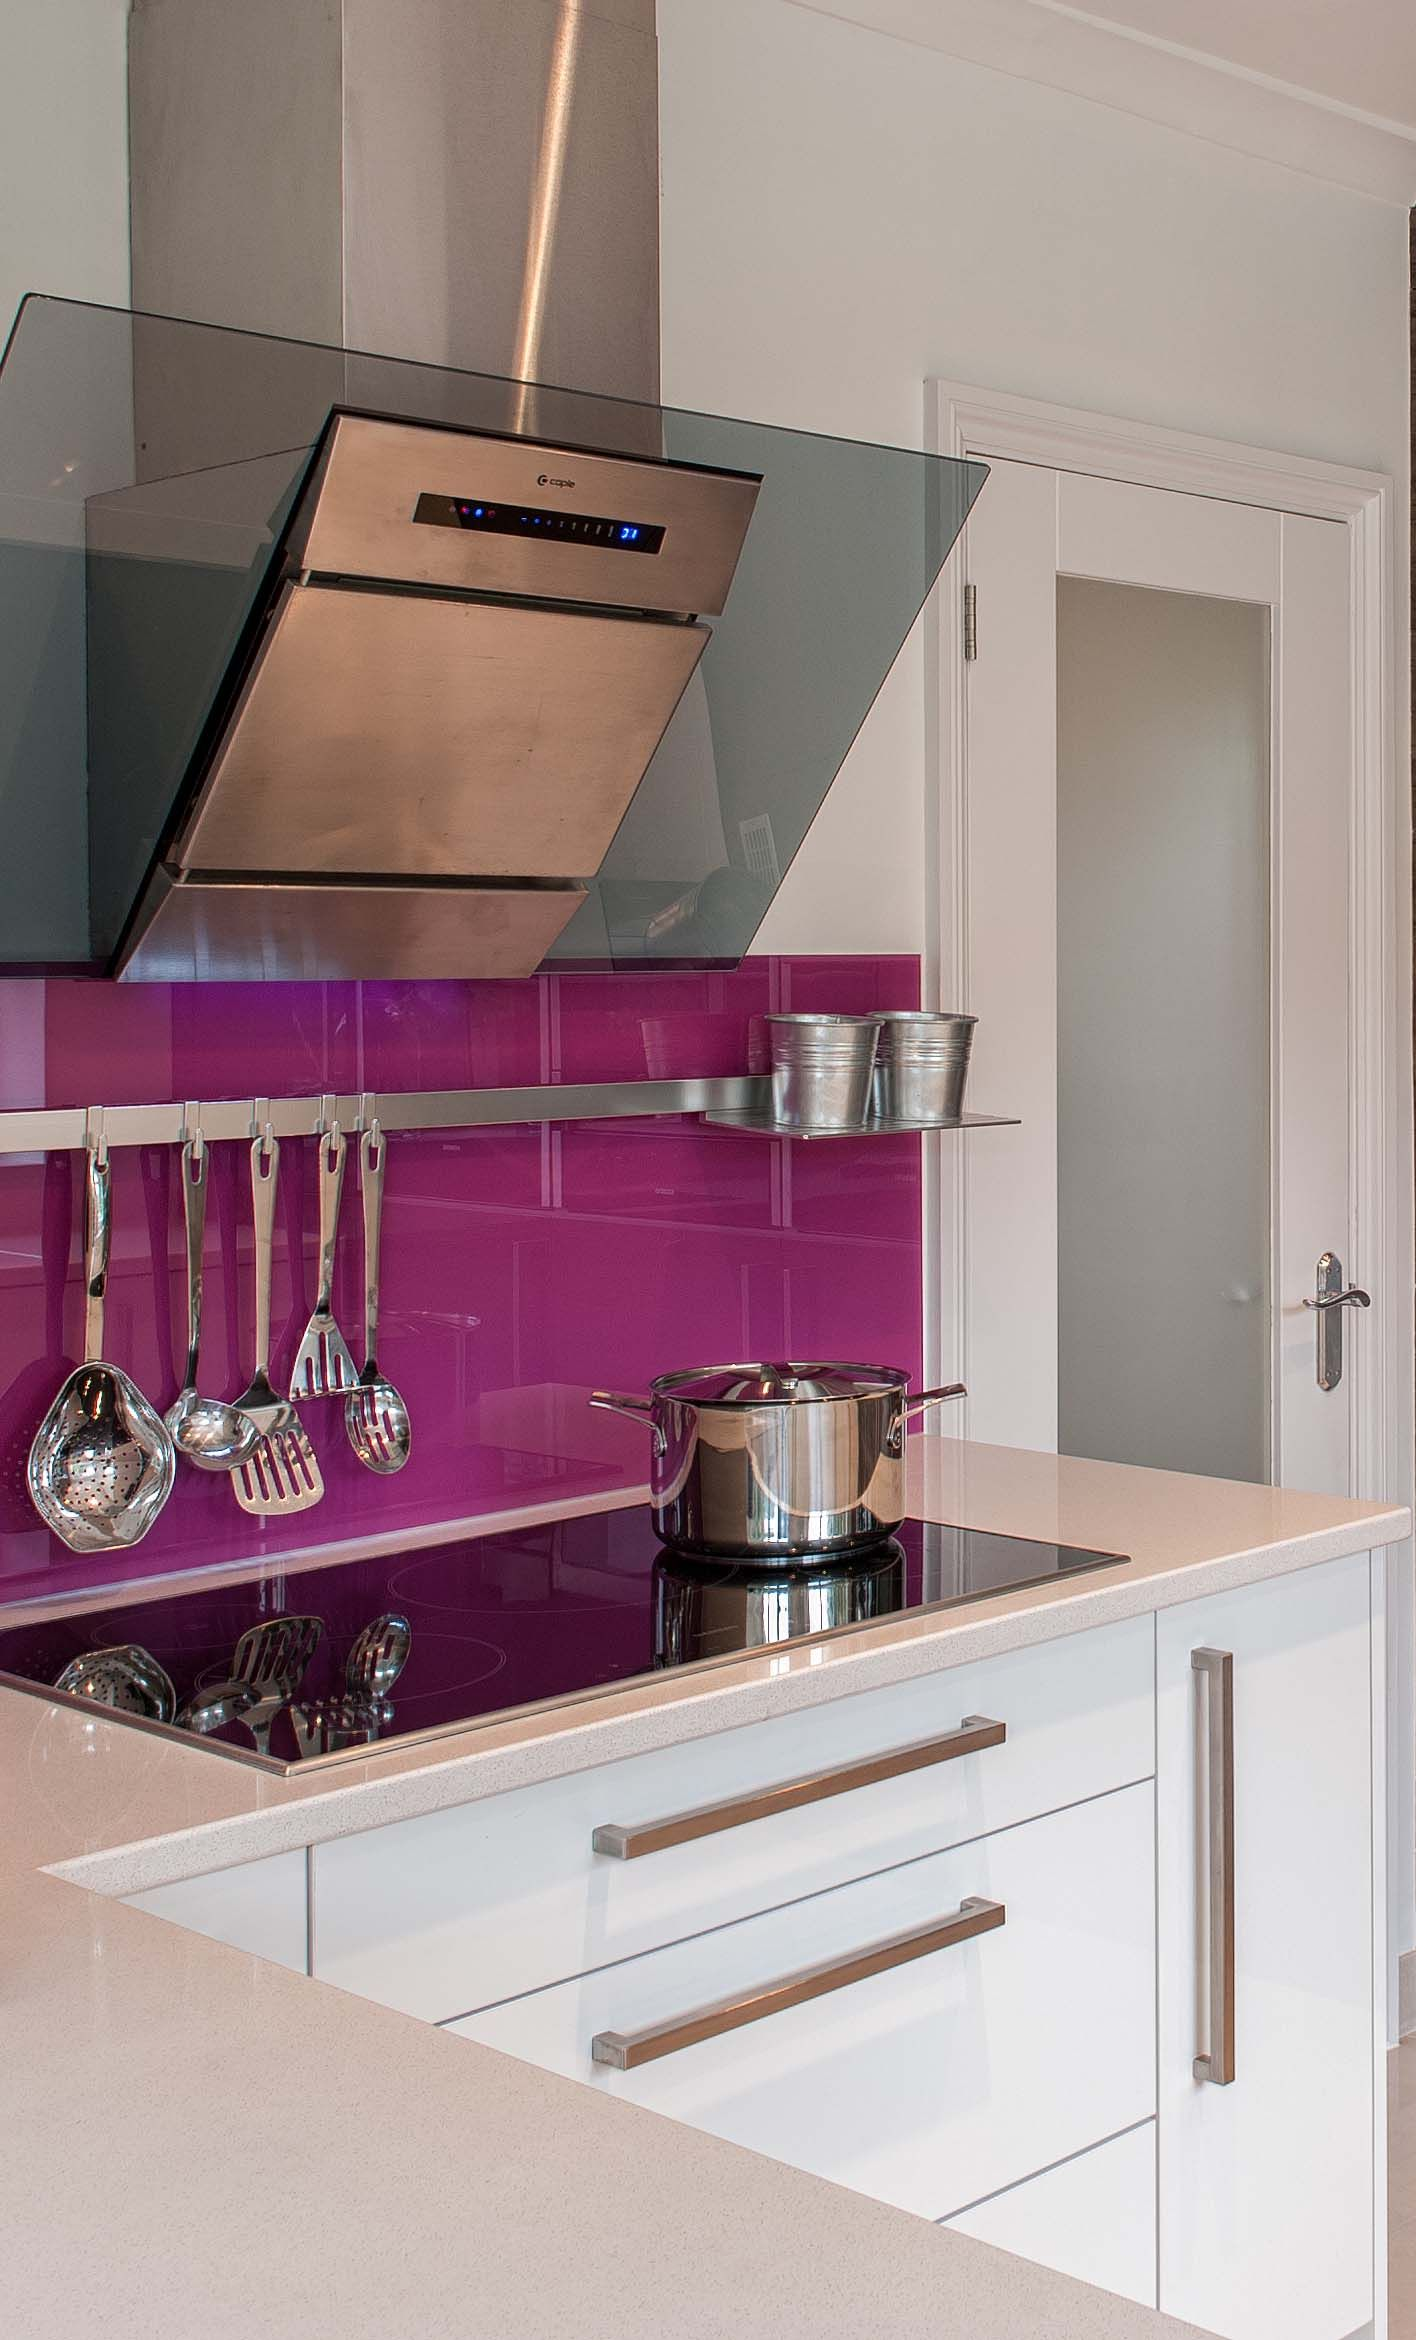 Hot Pink Backsplash Injects Colour Into A White Gloss Kitchen By Urban Myth